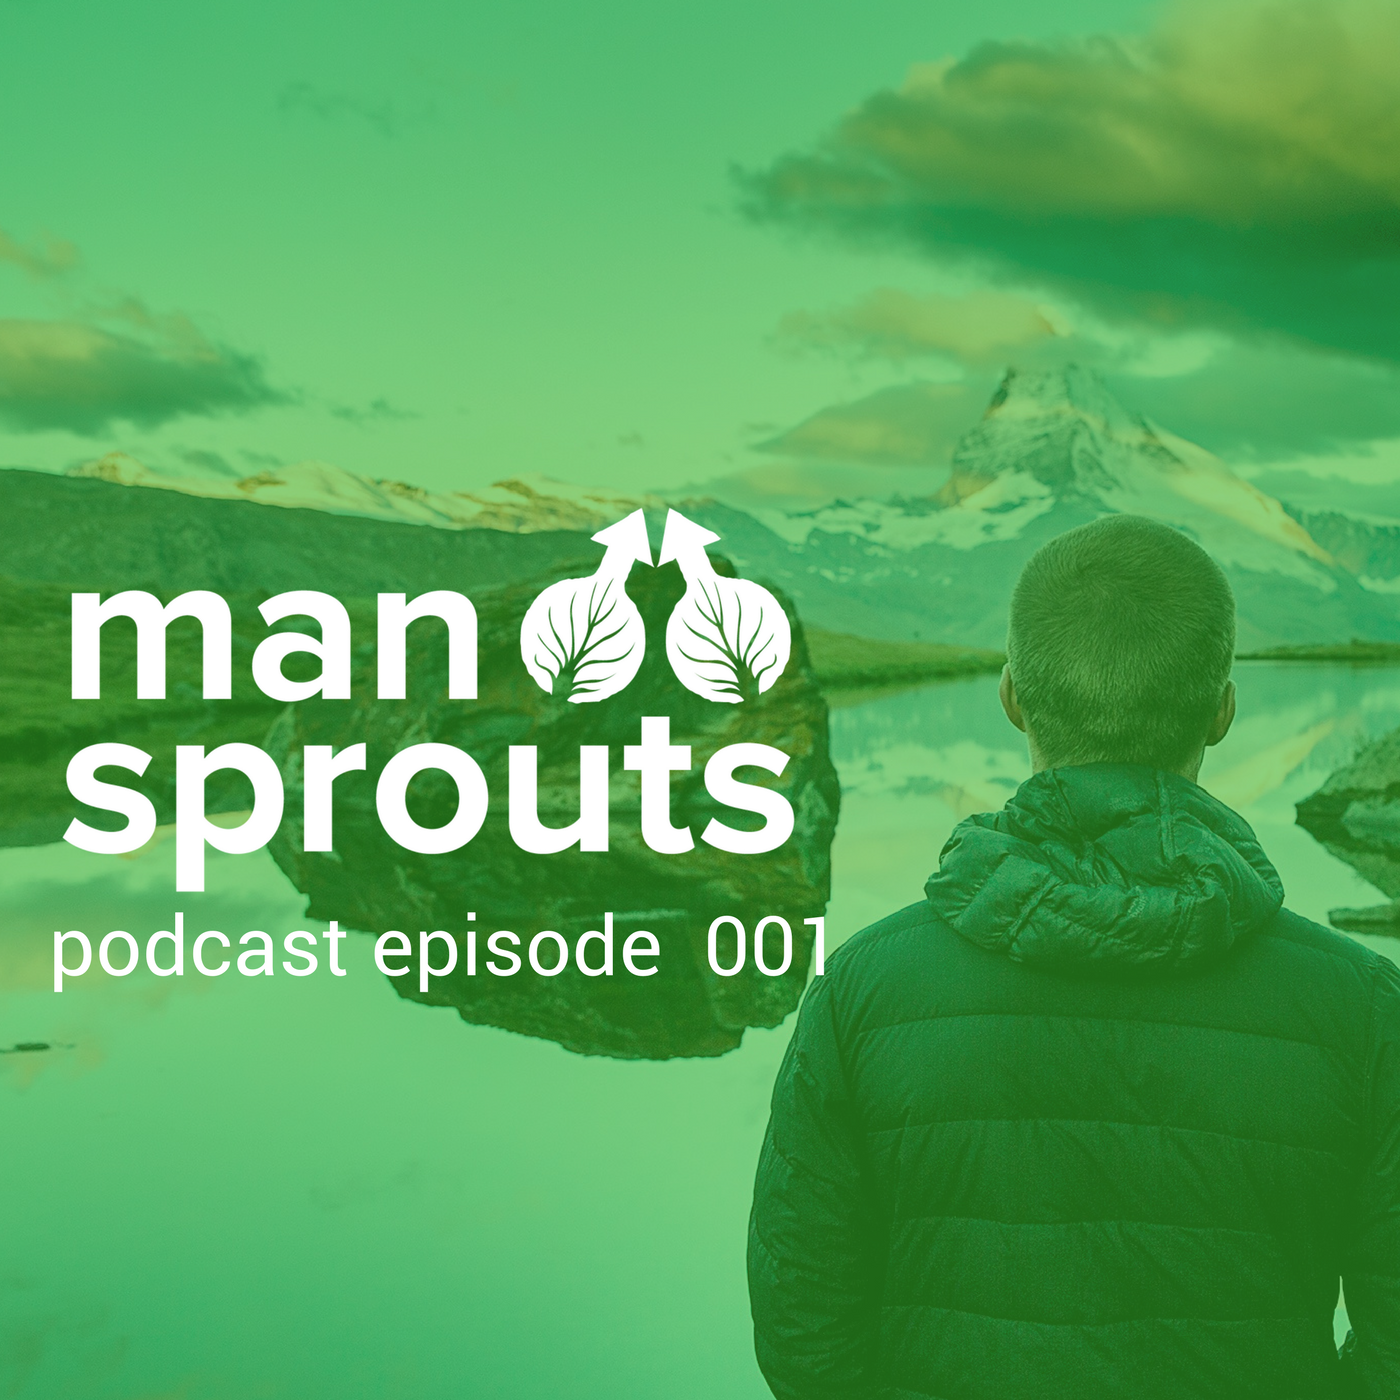 episode 1 of the man sprouts podcast